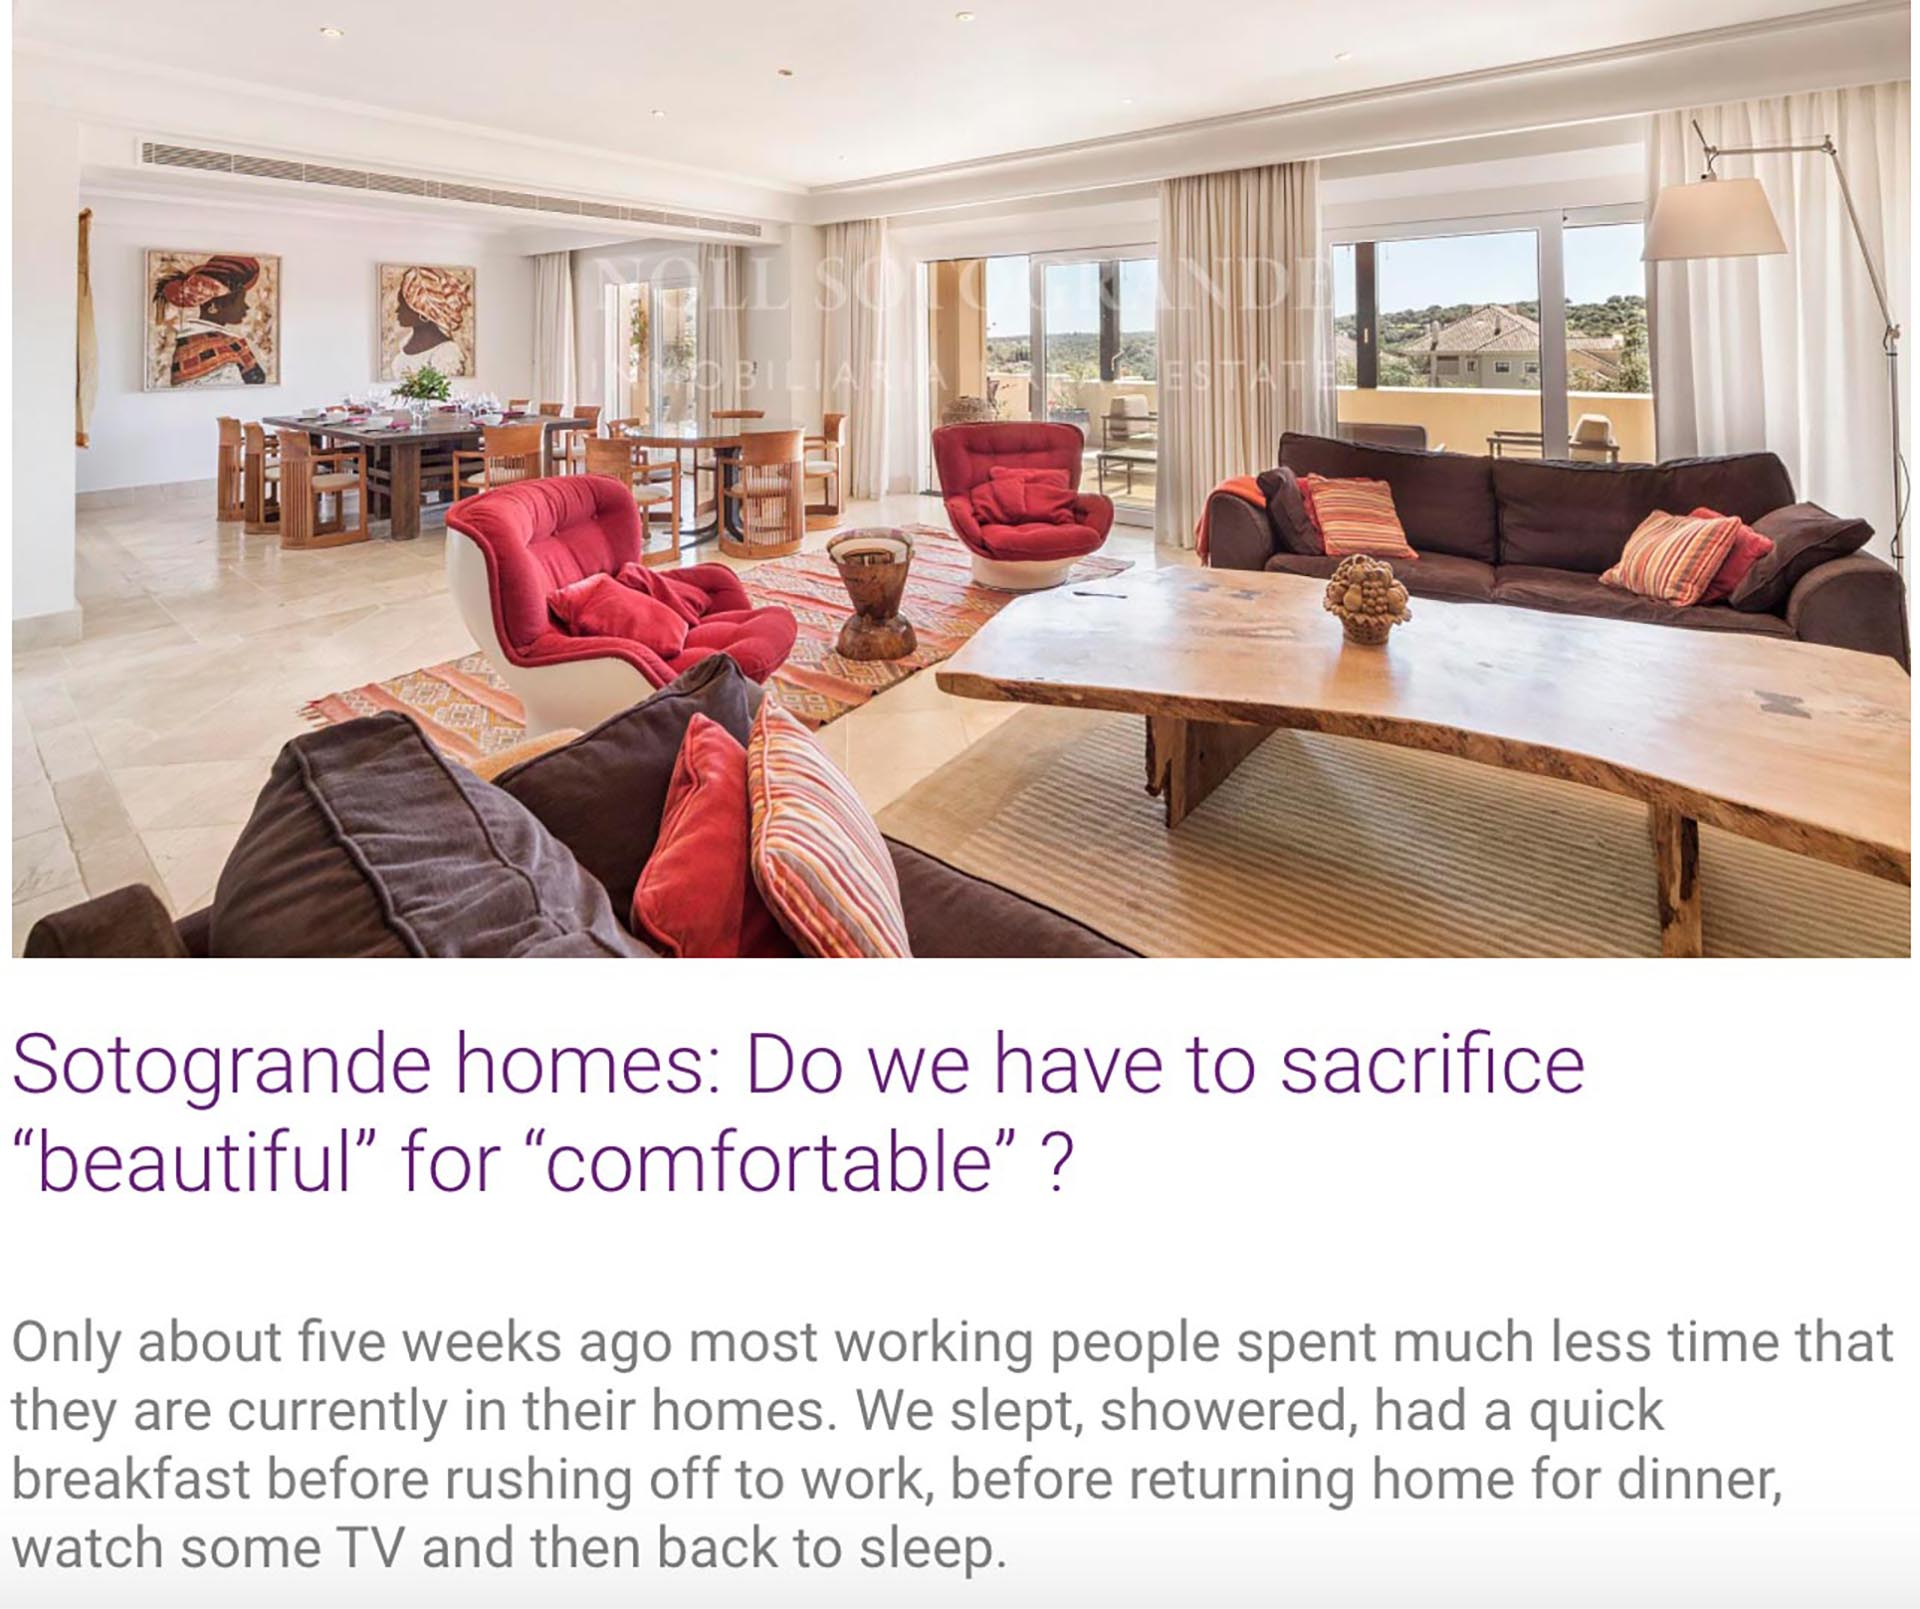 sotogrande-homes-do-we-have-to-sacrifice-beautiful-for-comfortable-banner